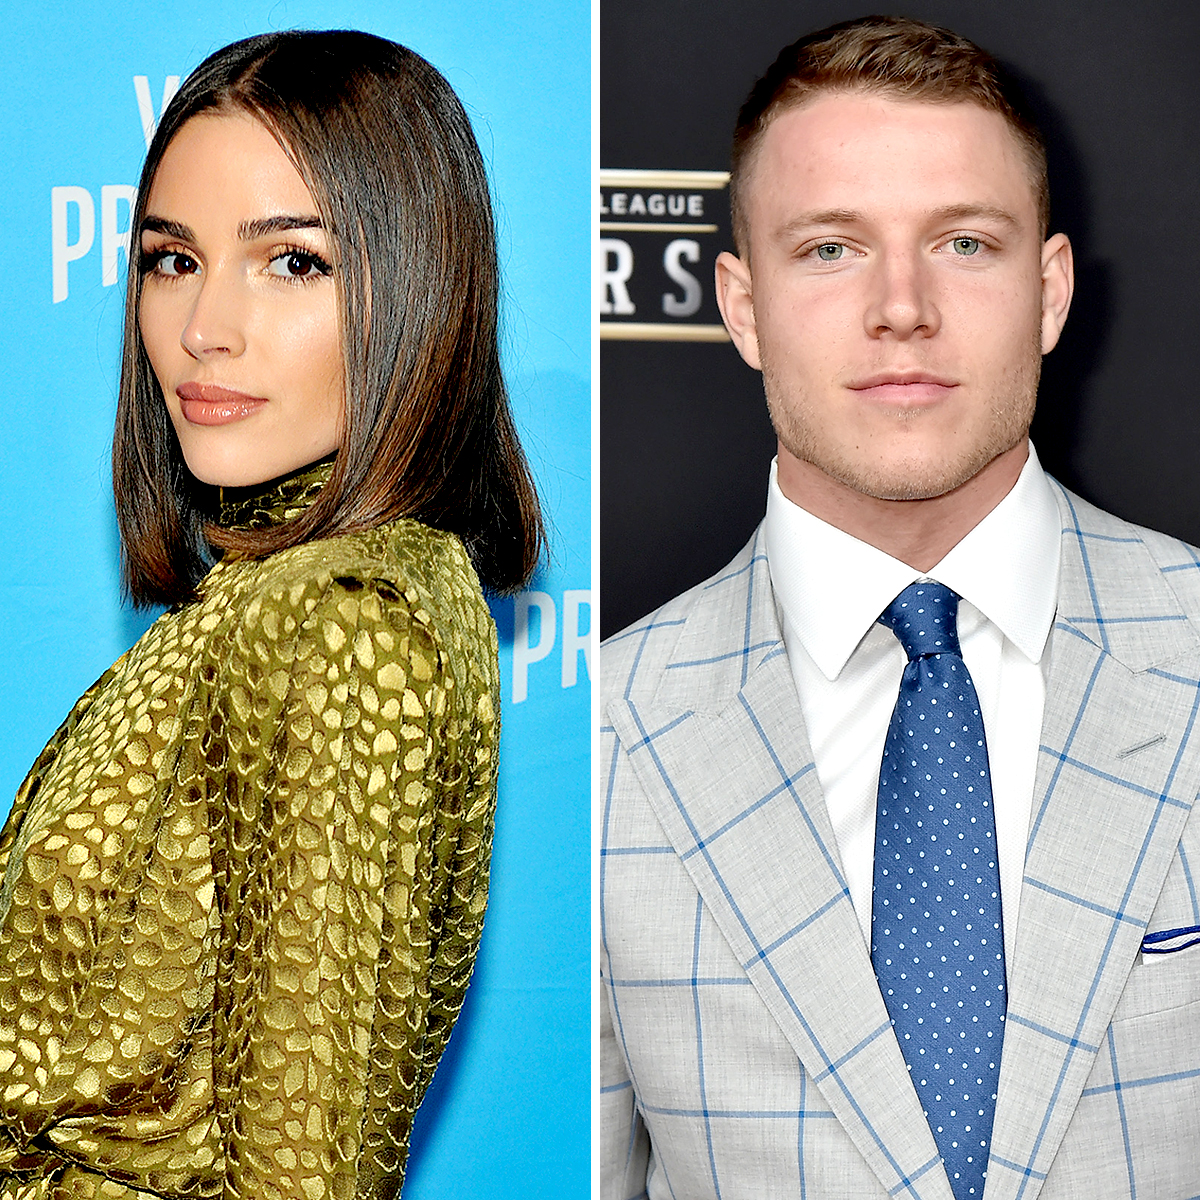 Olivia-Culpo-Spotted-With-Carolina-Panthers'-Christian-McCaffrey